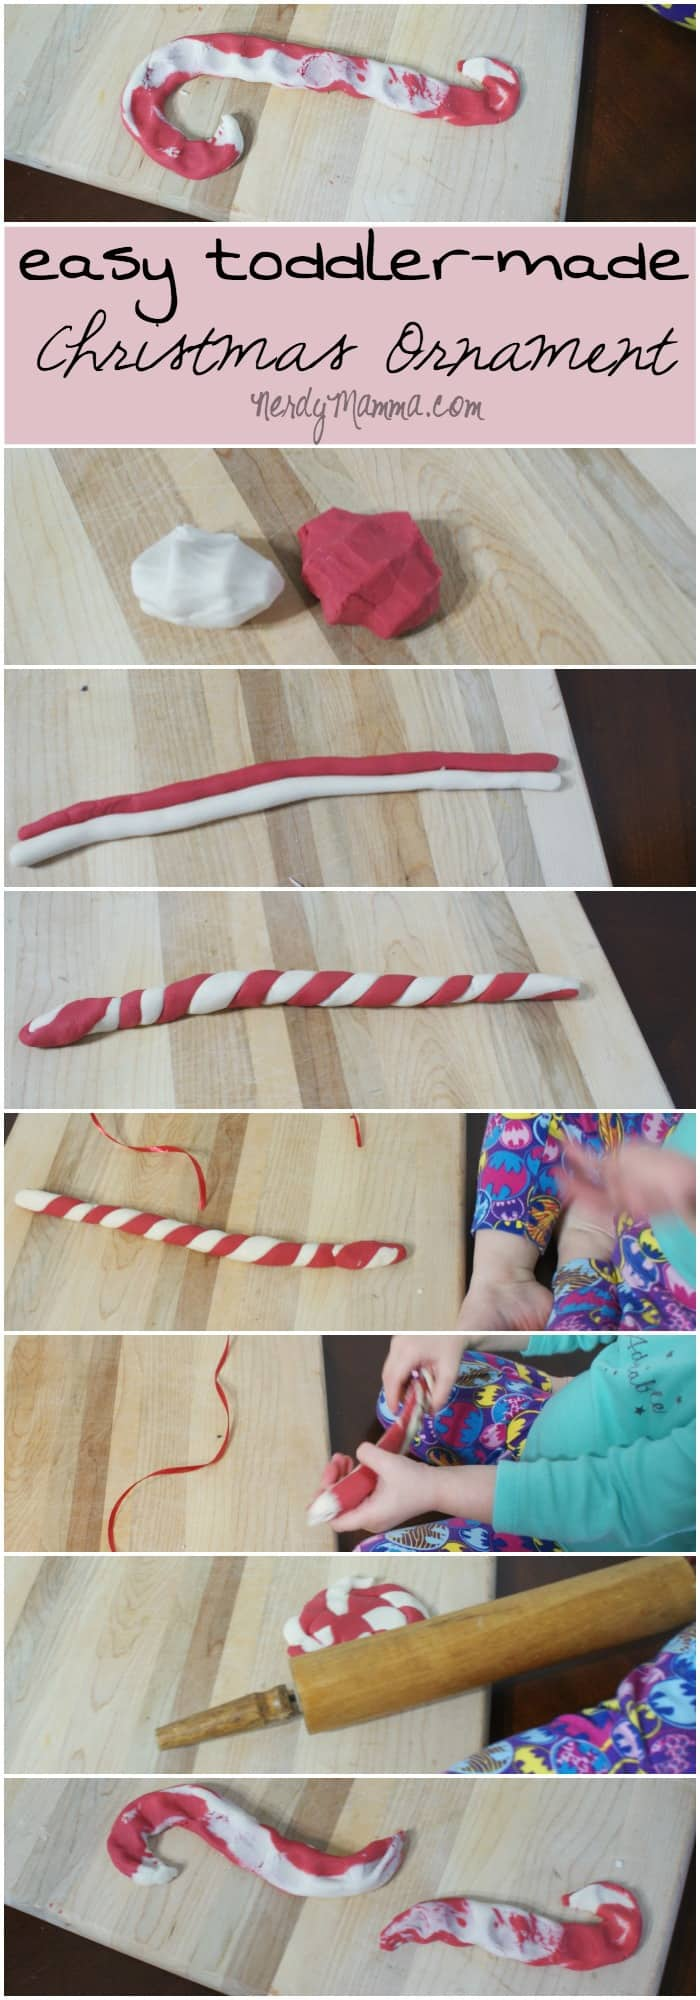 This is the first year I'm making Christmas Ornaments with my daughter and I needed an easy idea--so we made these cute thumbprint candy canes. She had so much fun--and it'll make a great memory!